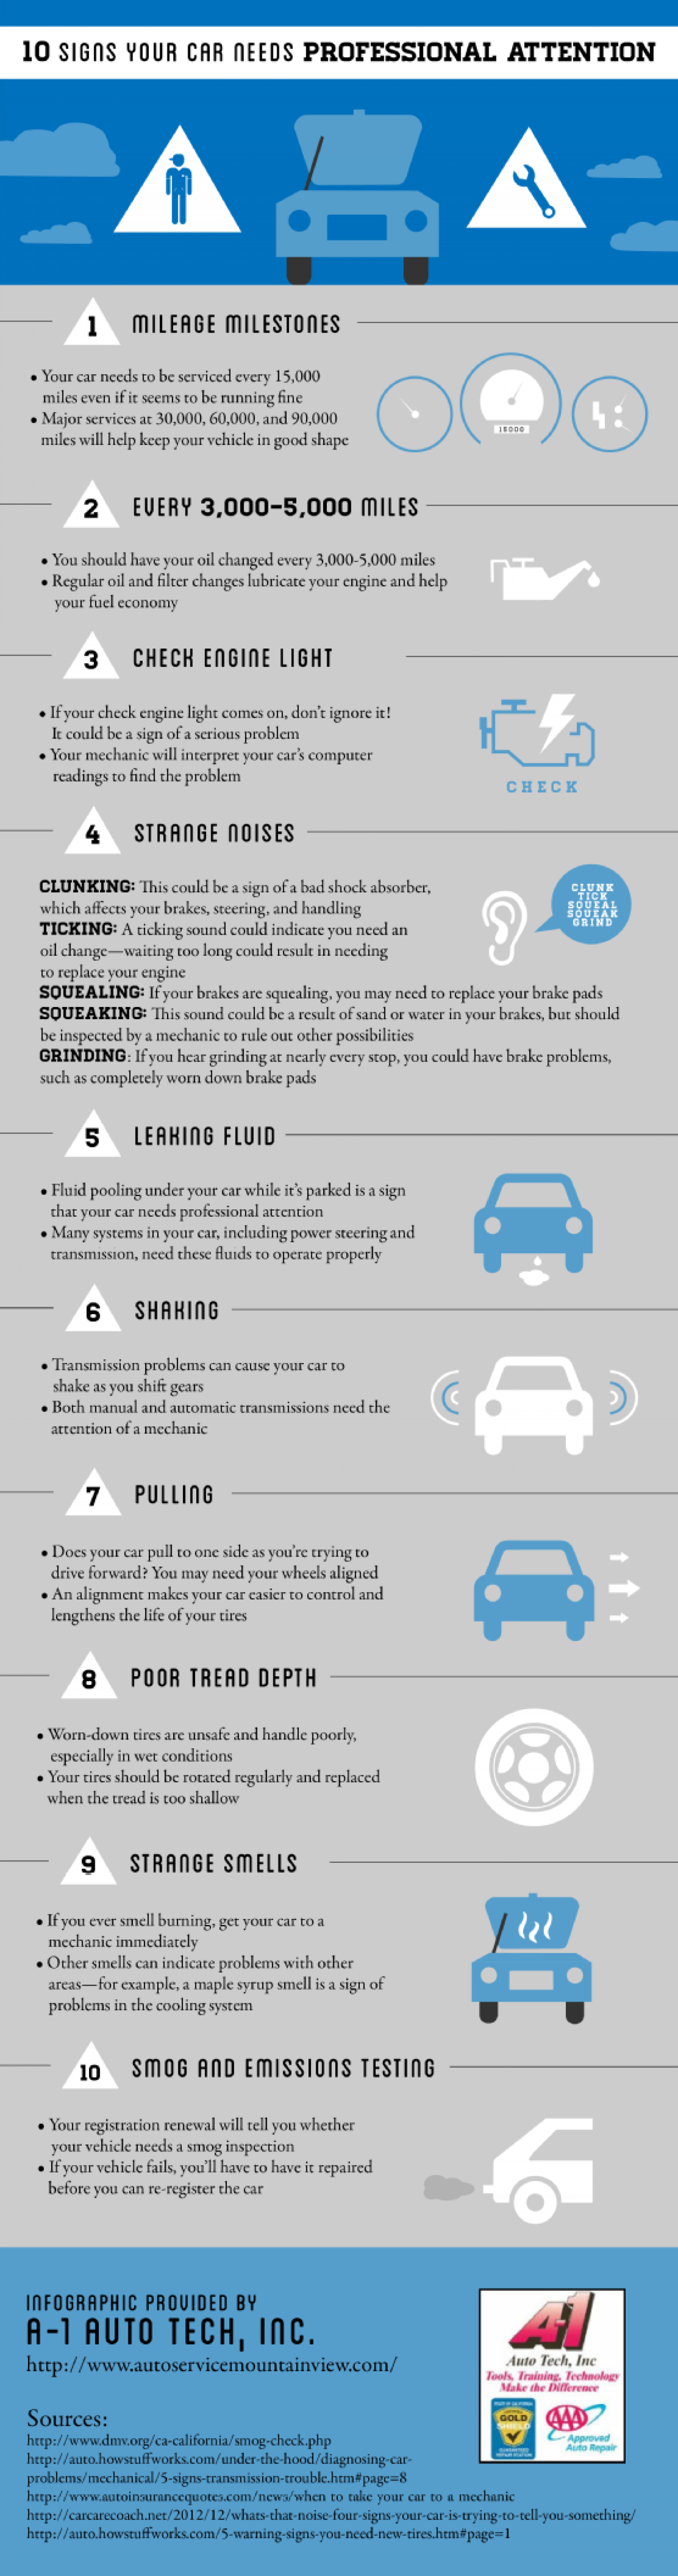 10 Signs Your Car Needs Professional Attention Infographic